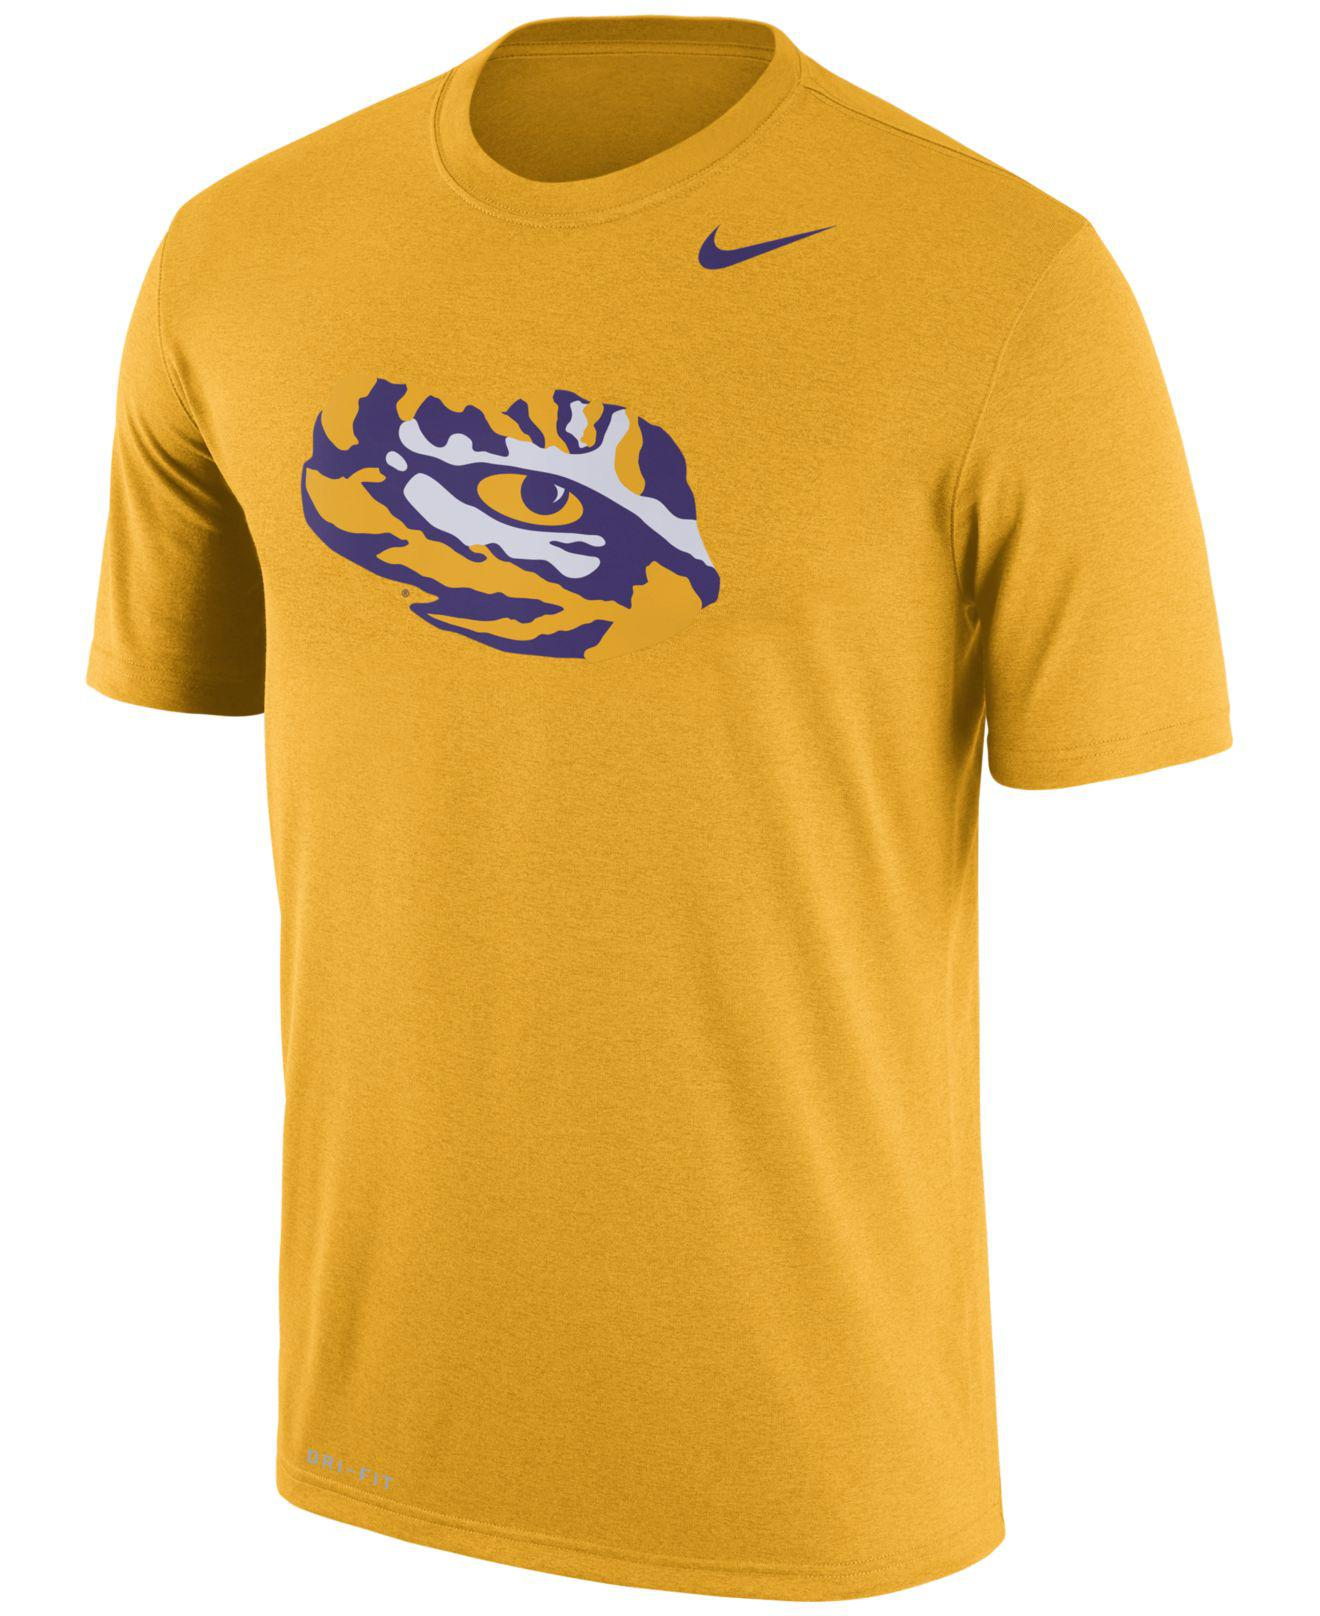 52992a74 Lyst - Nike Men's Lsu Tigers Legend Icon T-shirt in Yellow for Men